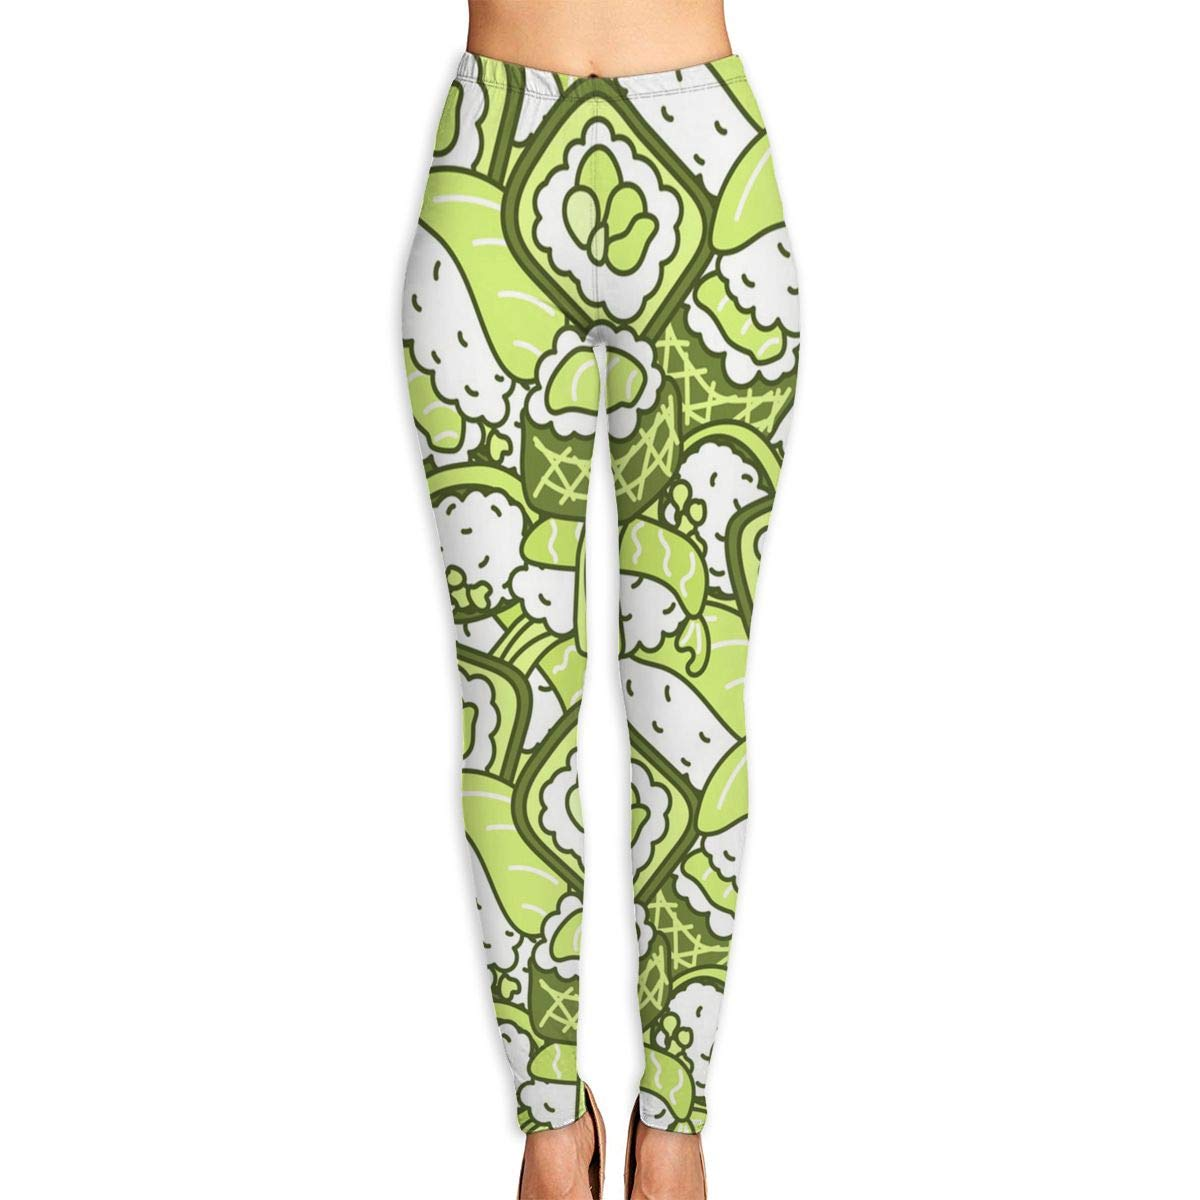 Virgo Sushi Compression Pants//Yoga Pants for Women Drawstring Running Tights